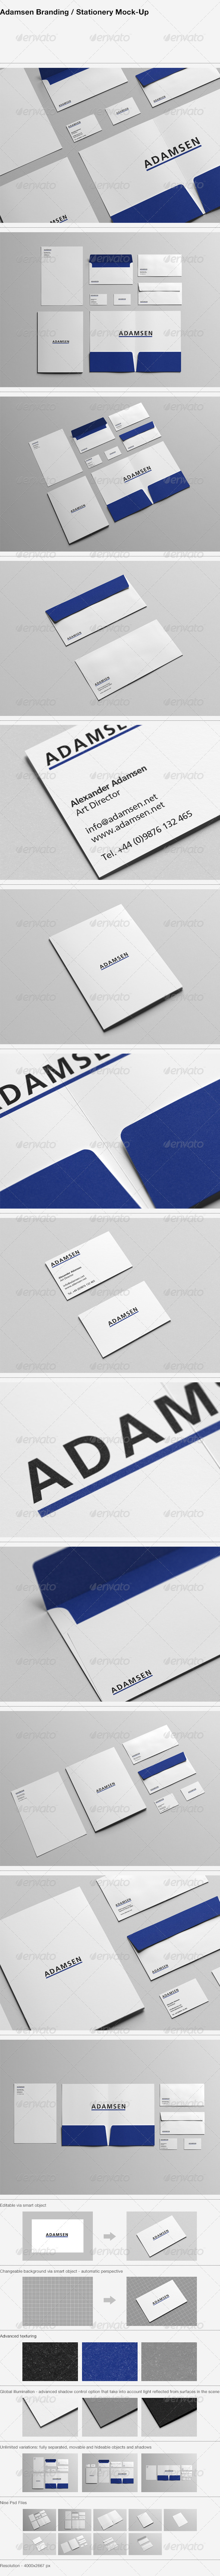 Adamsen - Branding / Stationery Mock-Up - Stationery Print